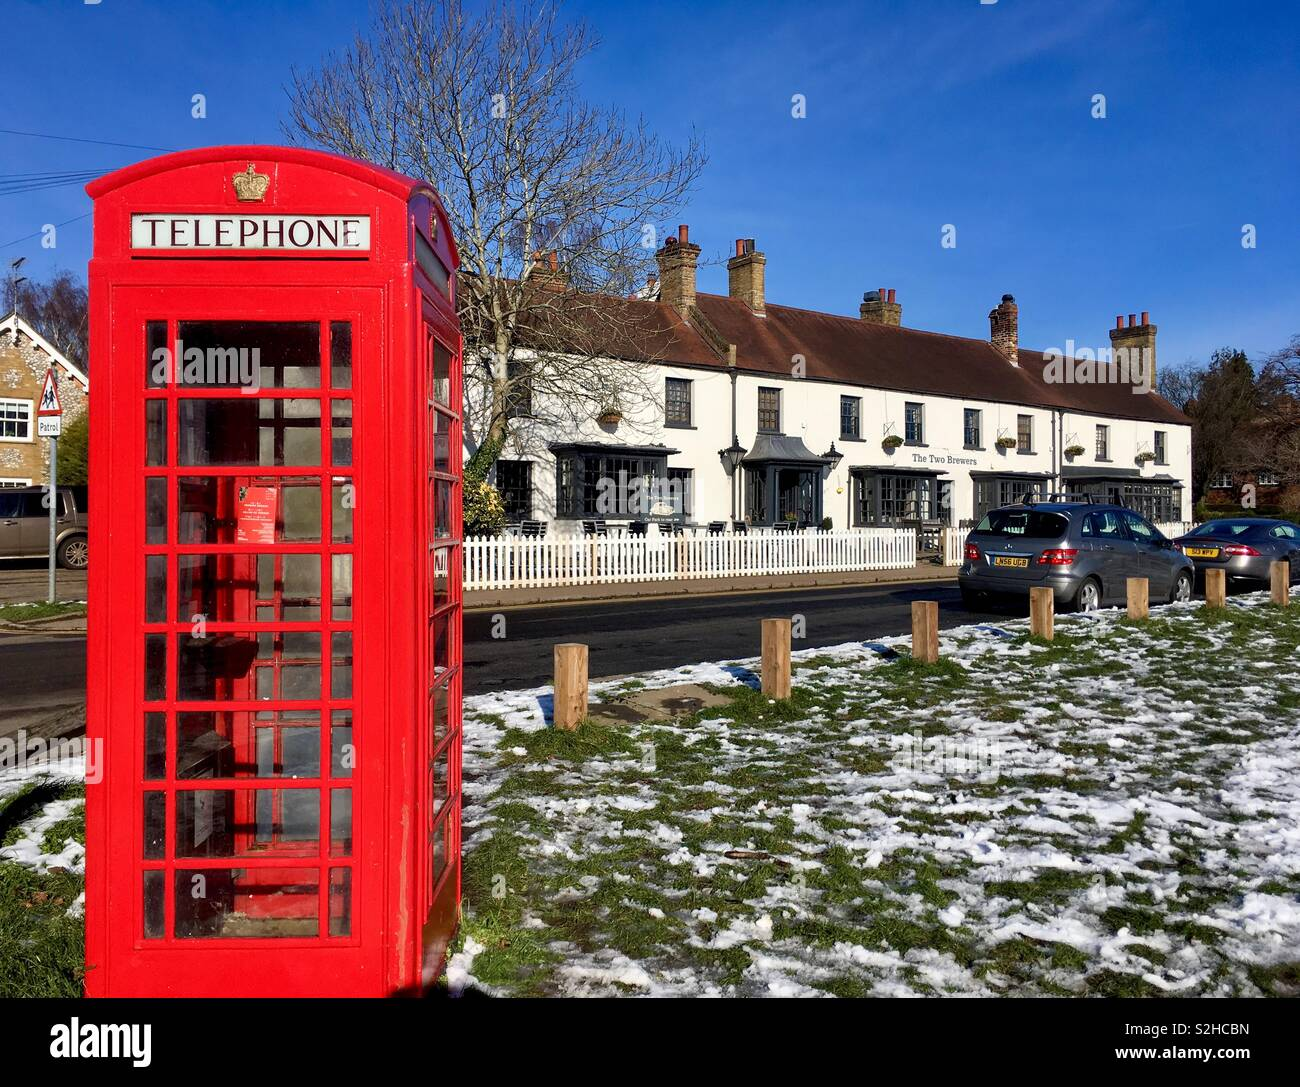 British red telephone box by village pub. - Stock Image